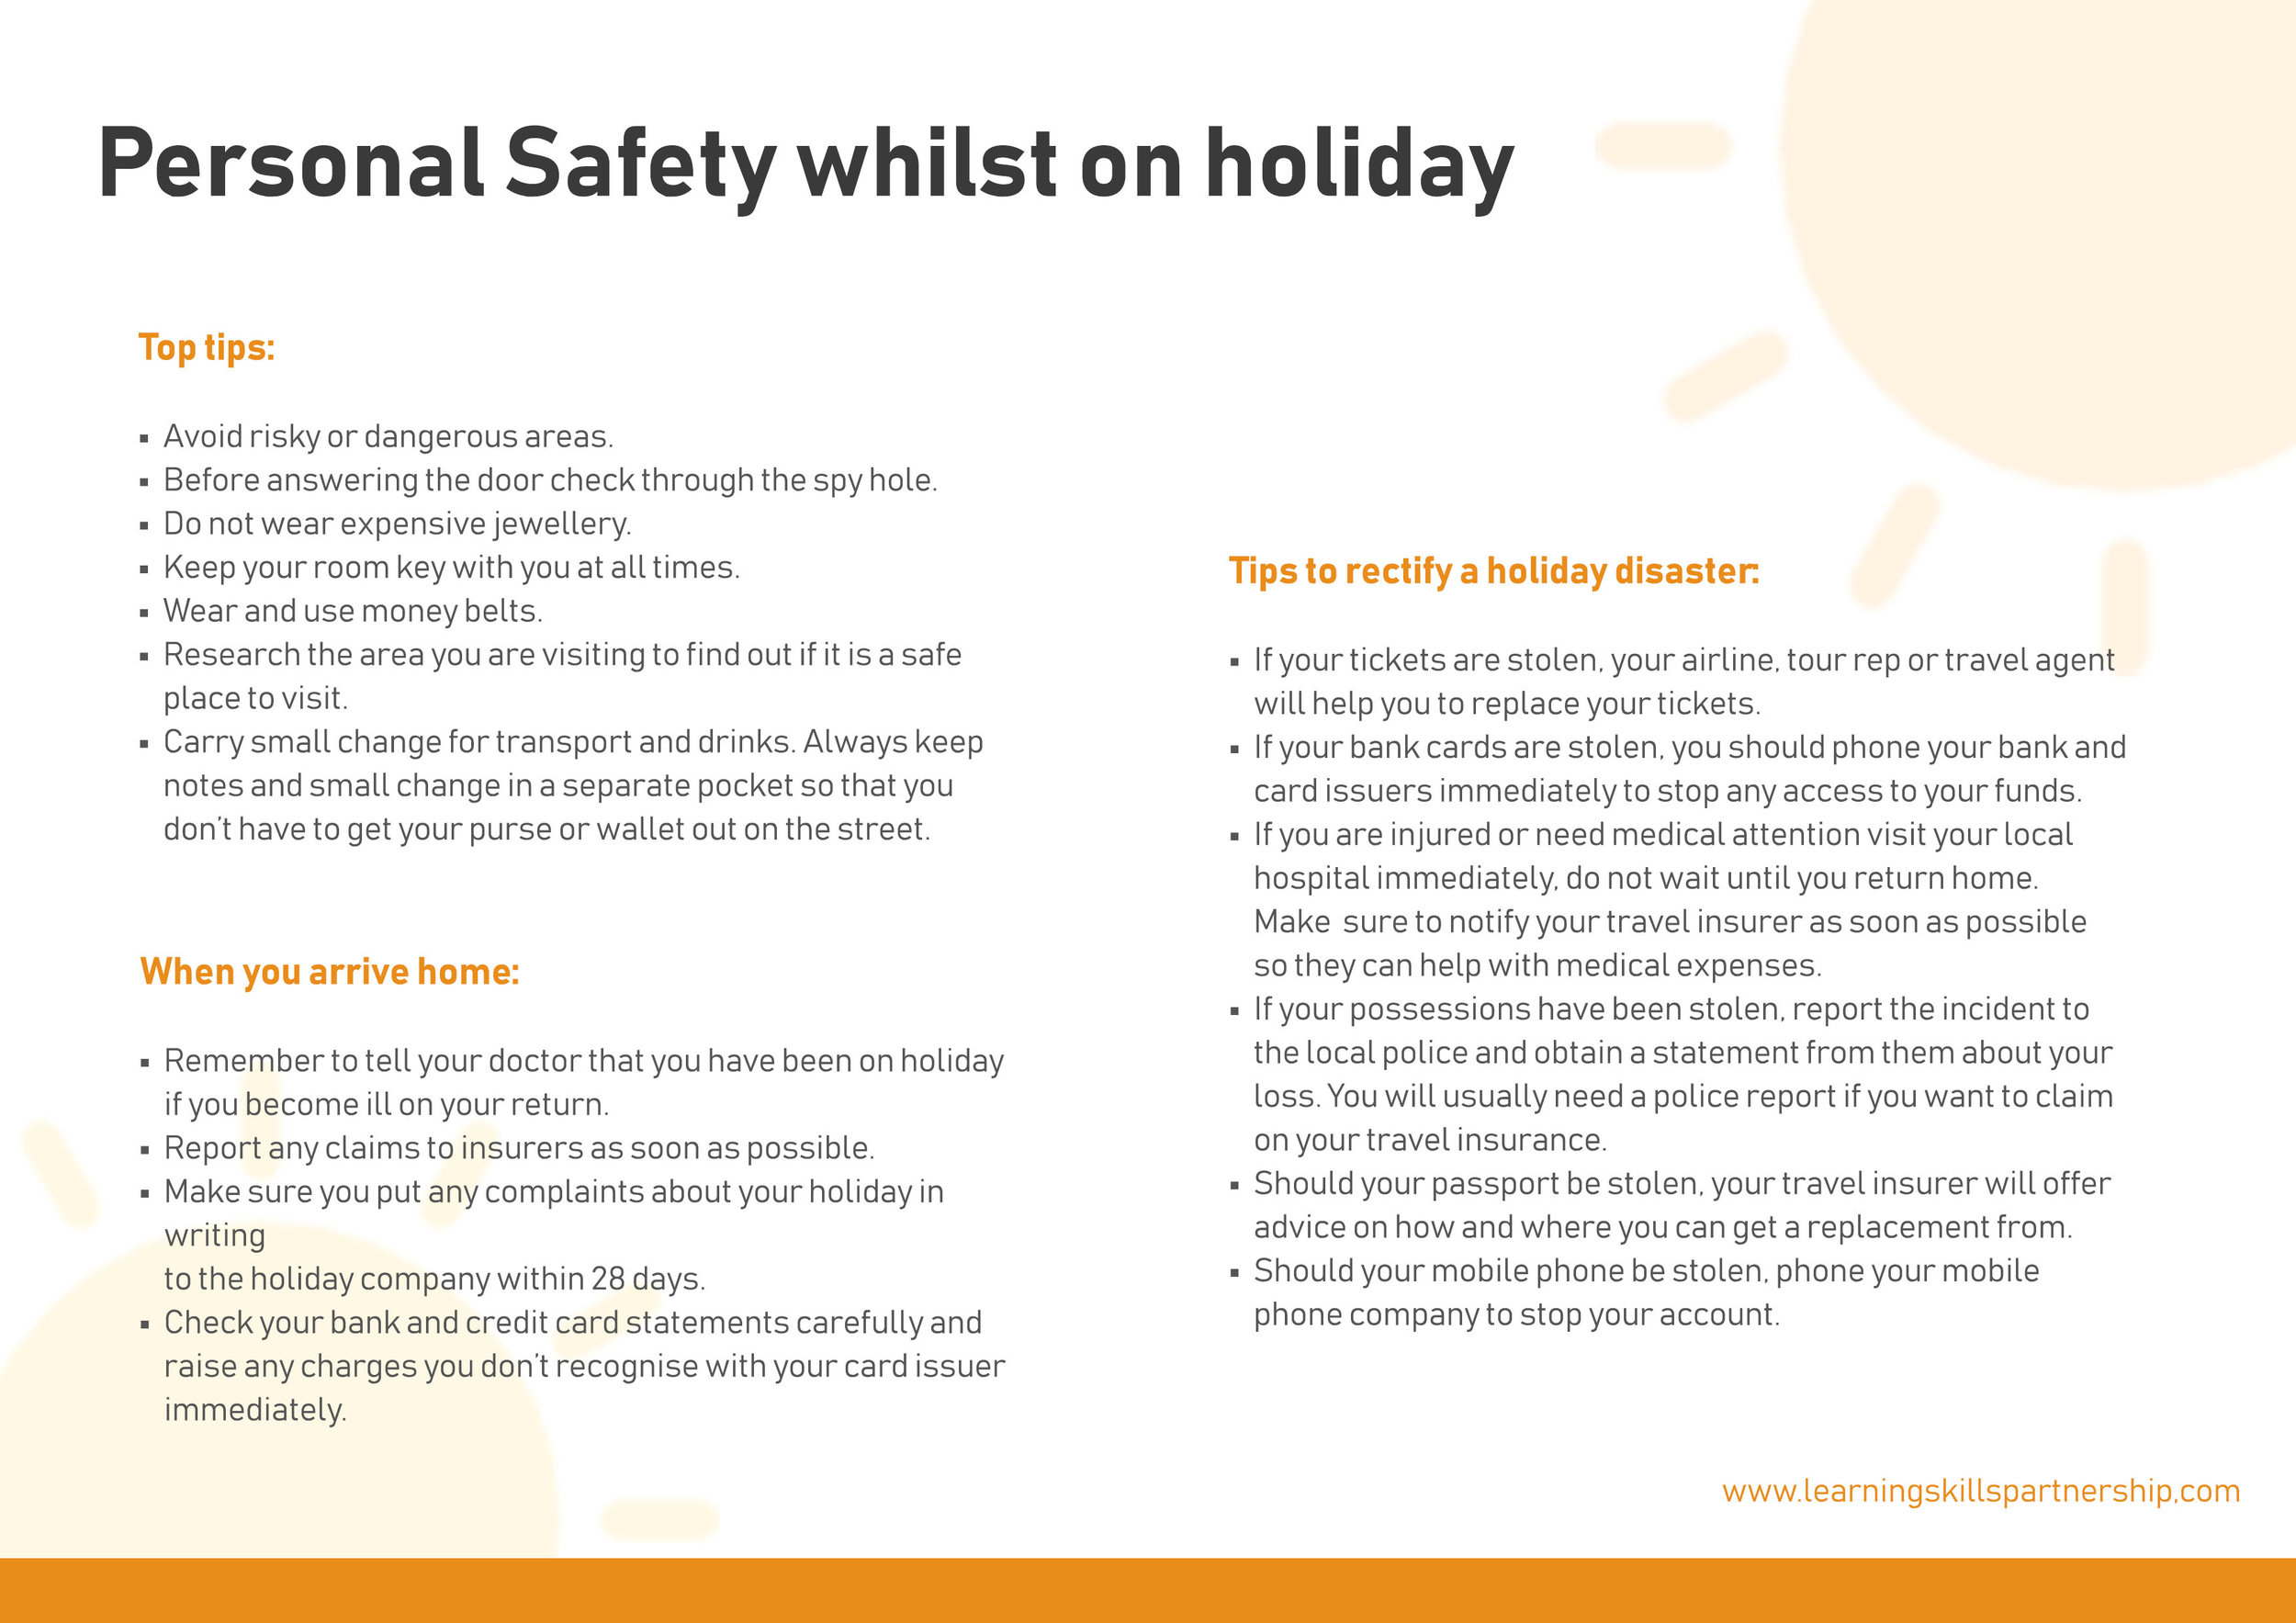 Personal Safety whils on holiday - Handout.jpg